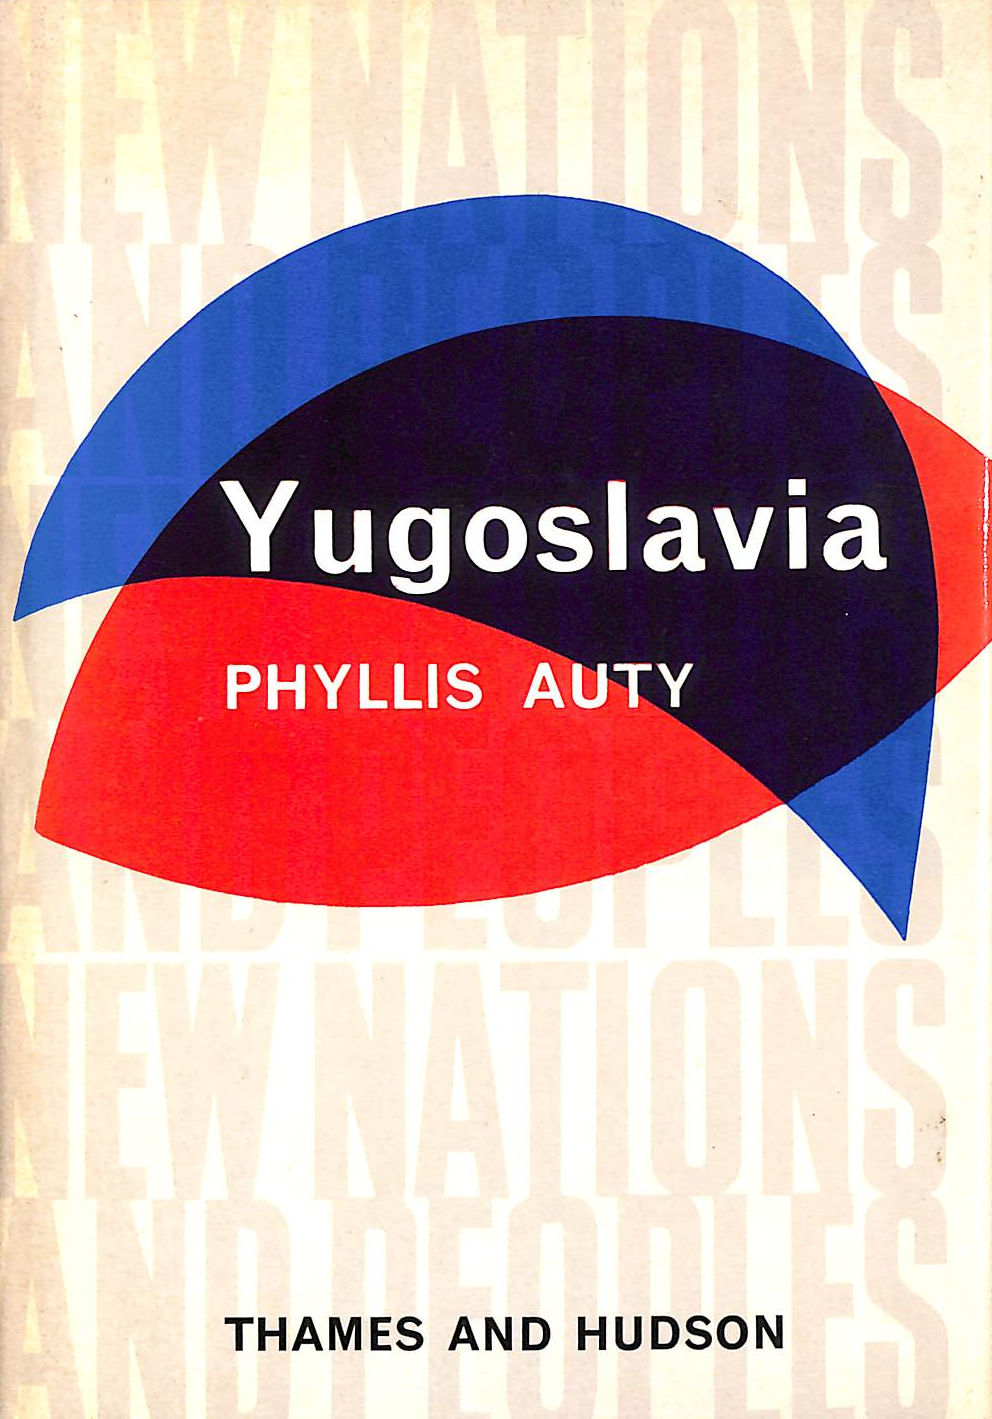 Image for Yugoslavia (New Nations & Peoples S.)